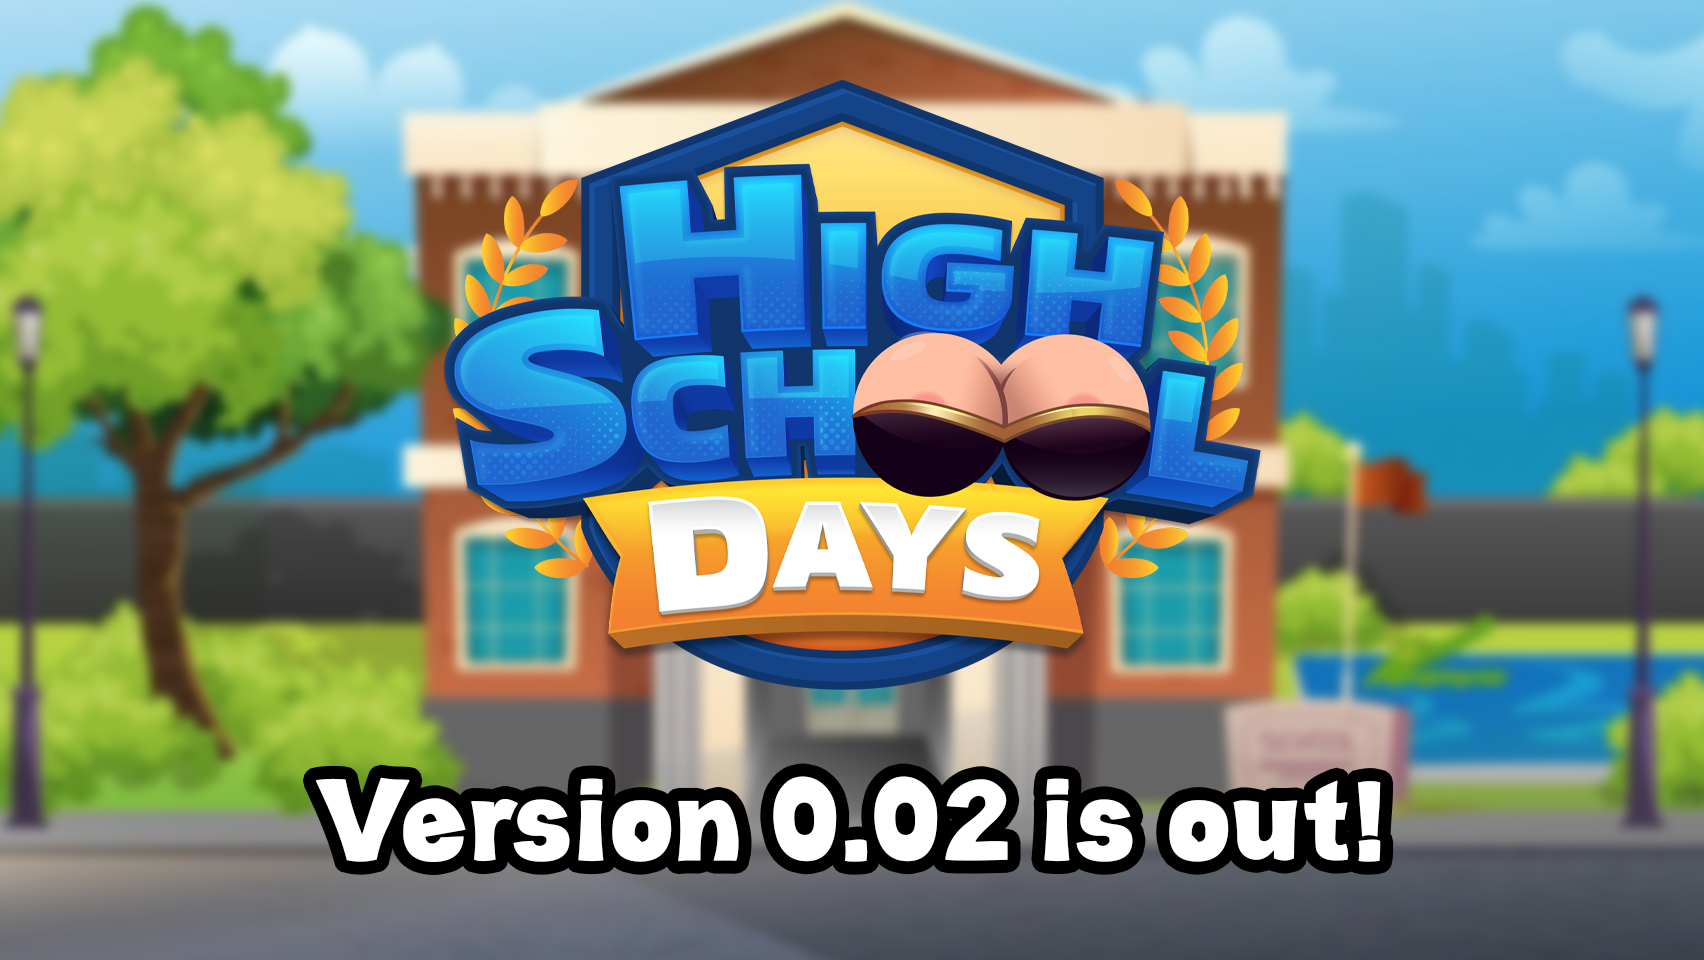 Version 0.02 is out!